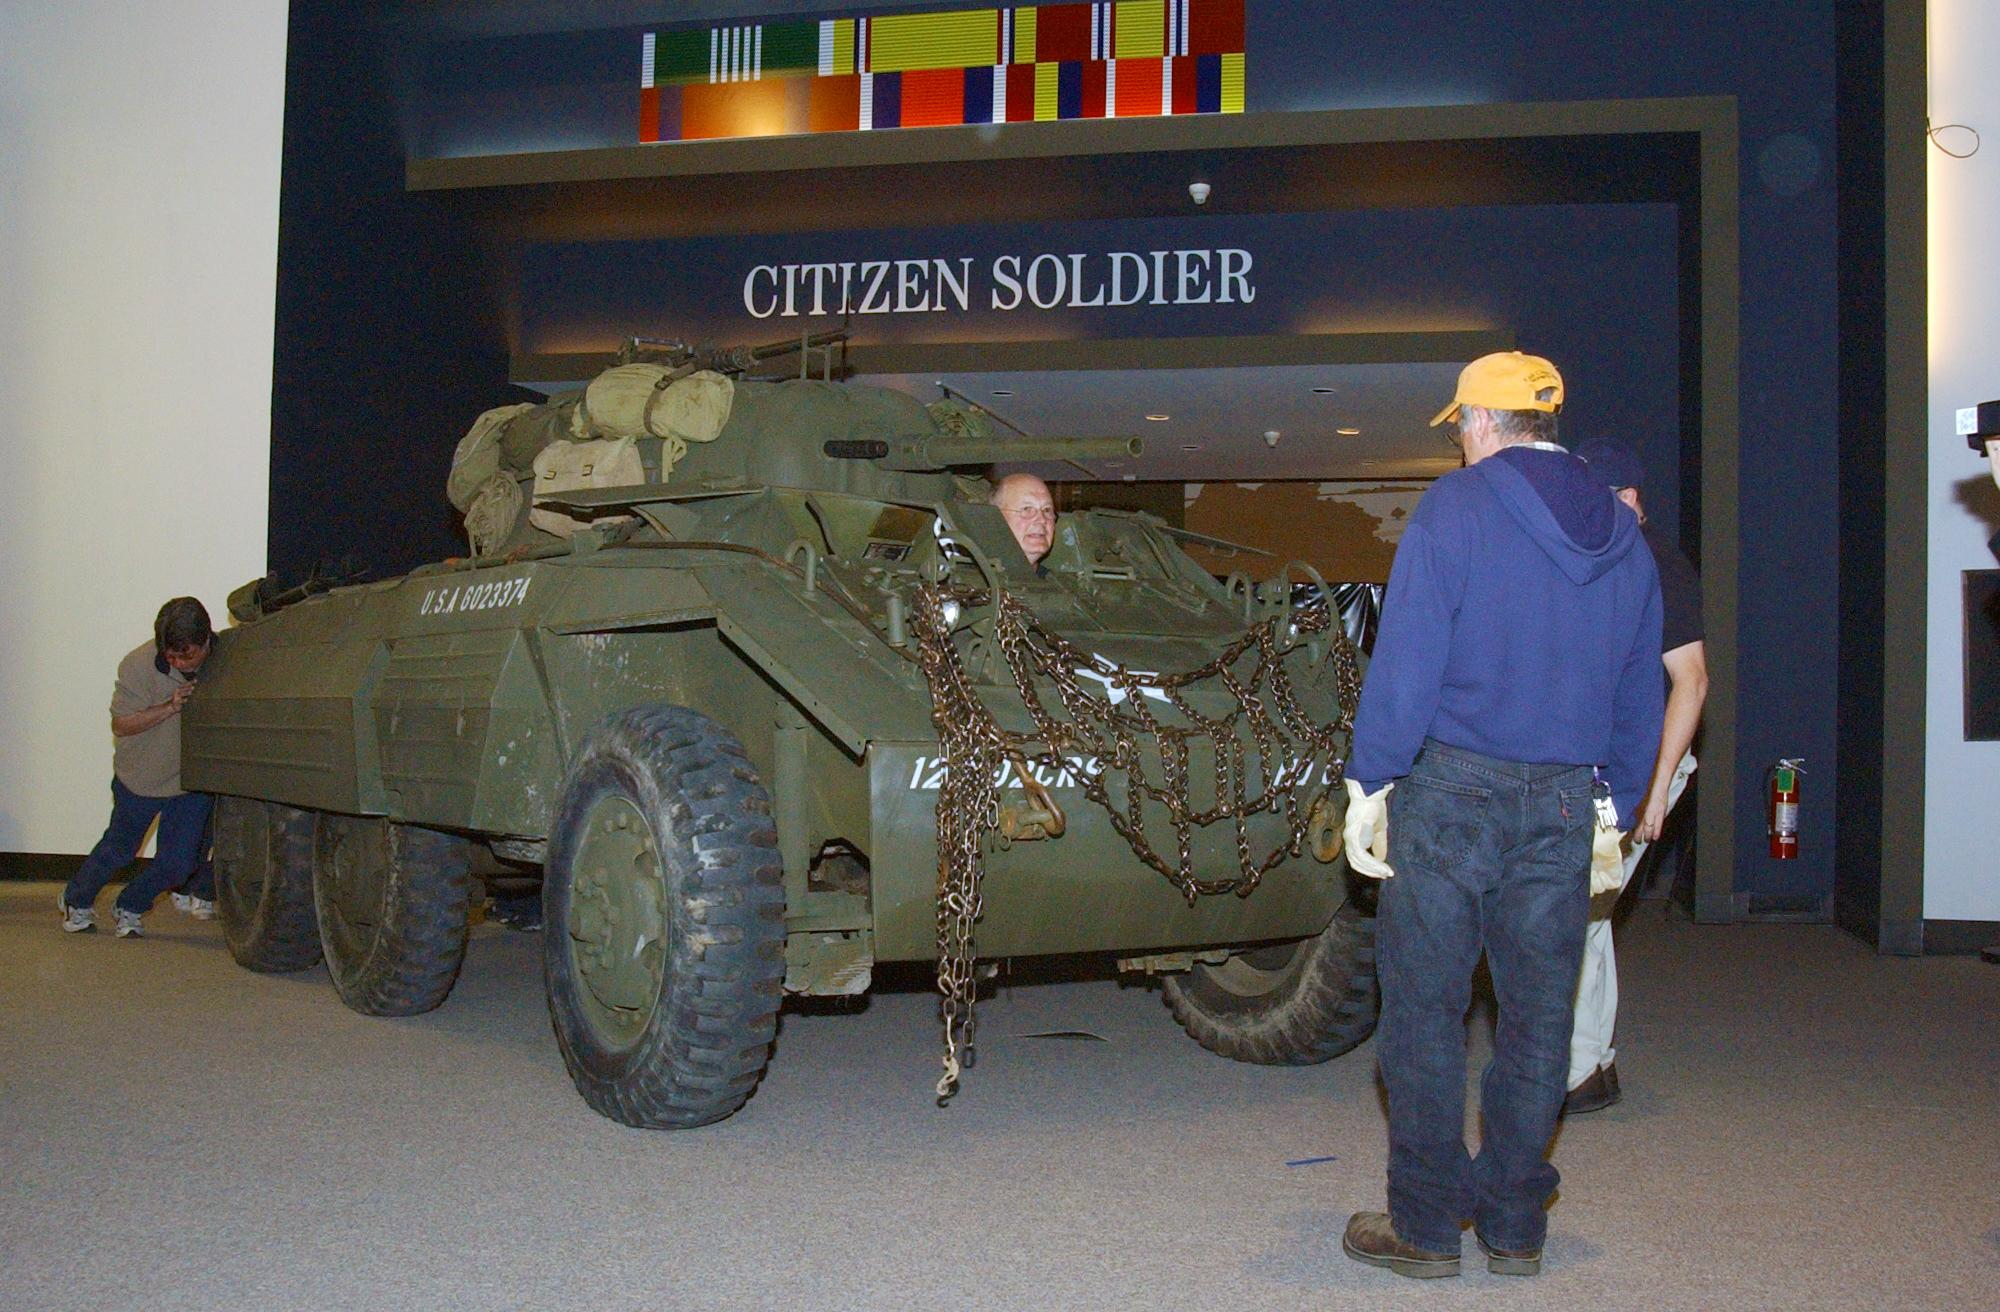 Citizen Soldier Exhibit to open for Memorial Day Weekend